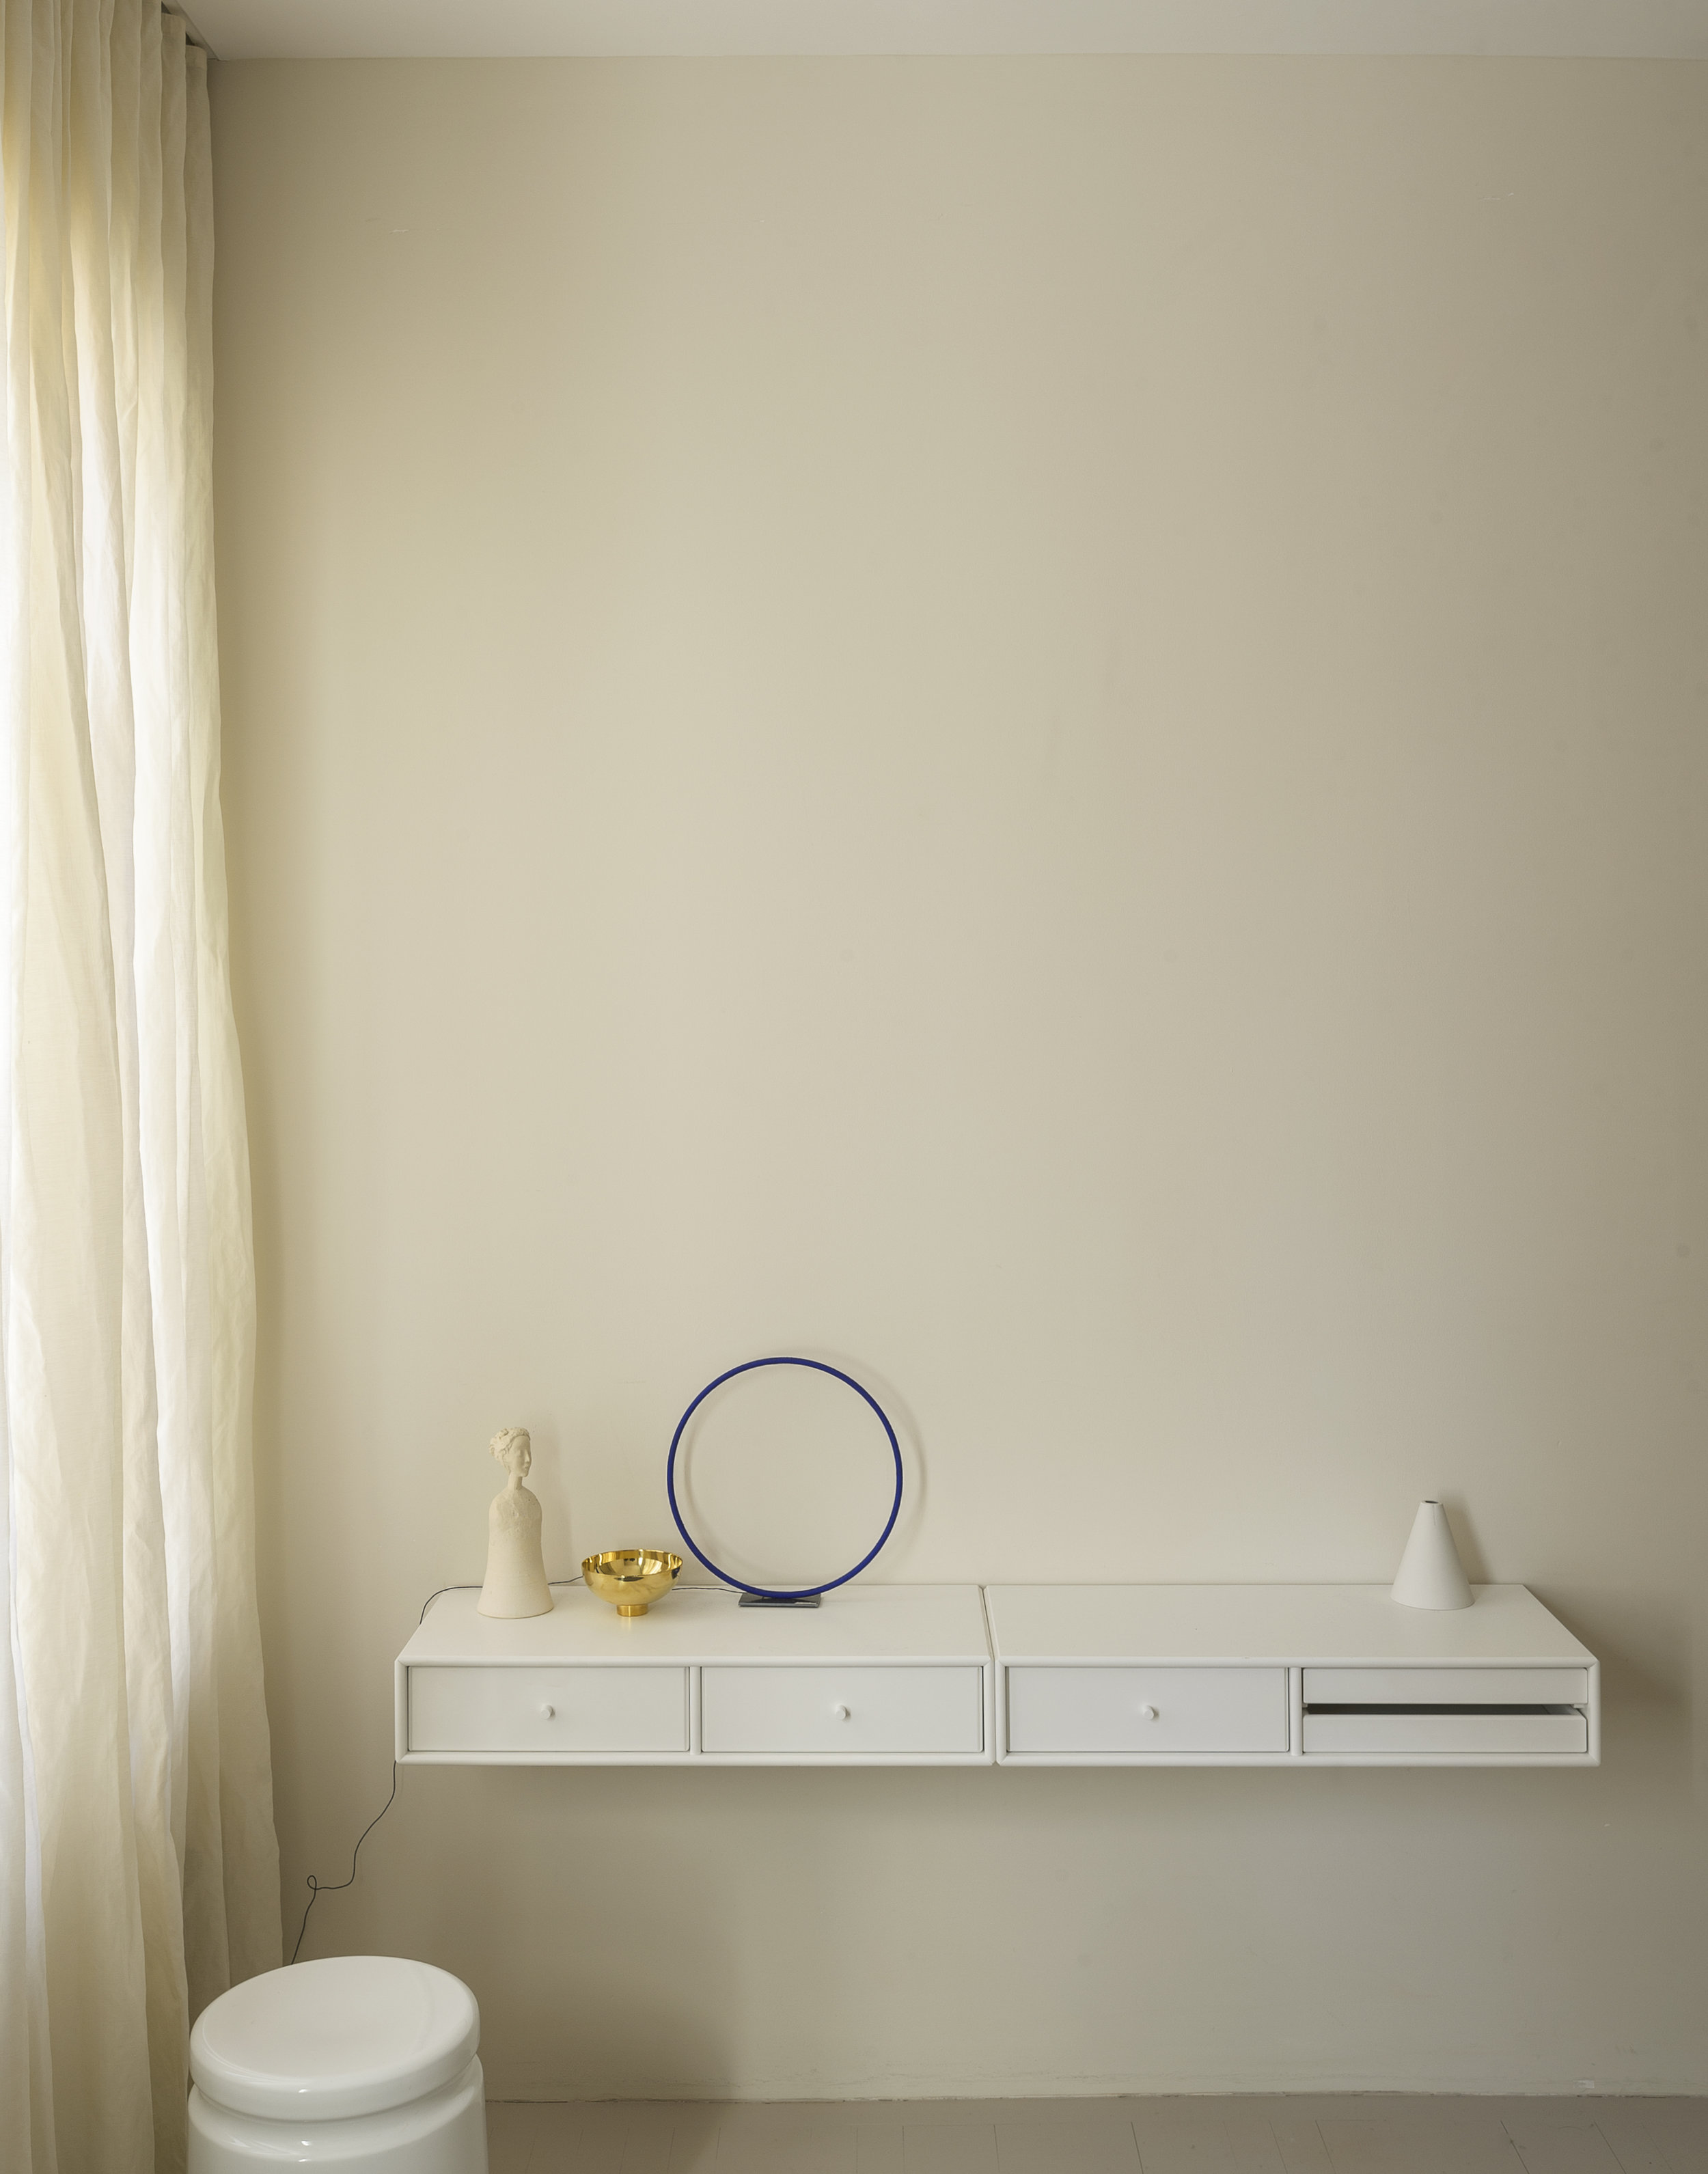 Photography  Matthew Williams   Styling  Alexa Hotz   for  Remodelista